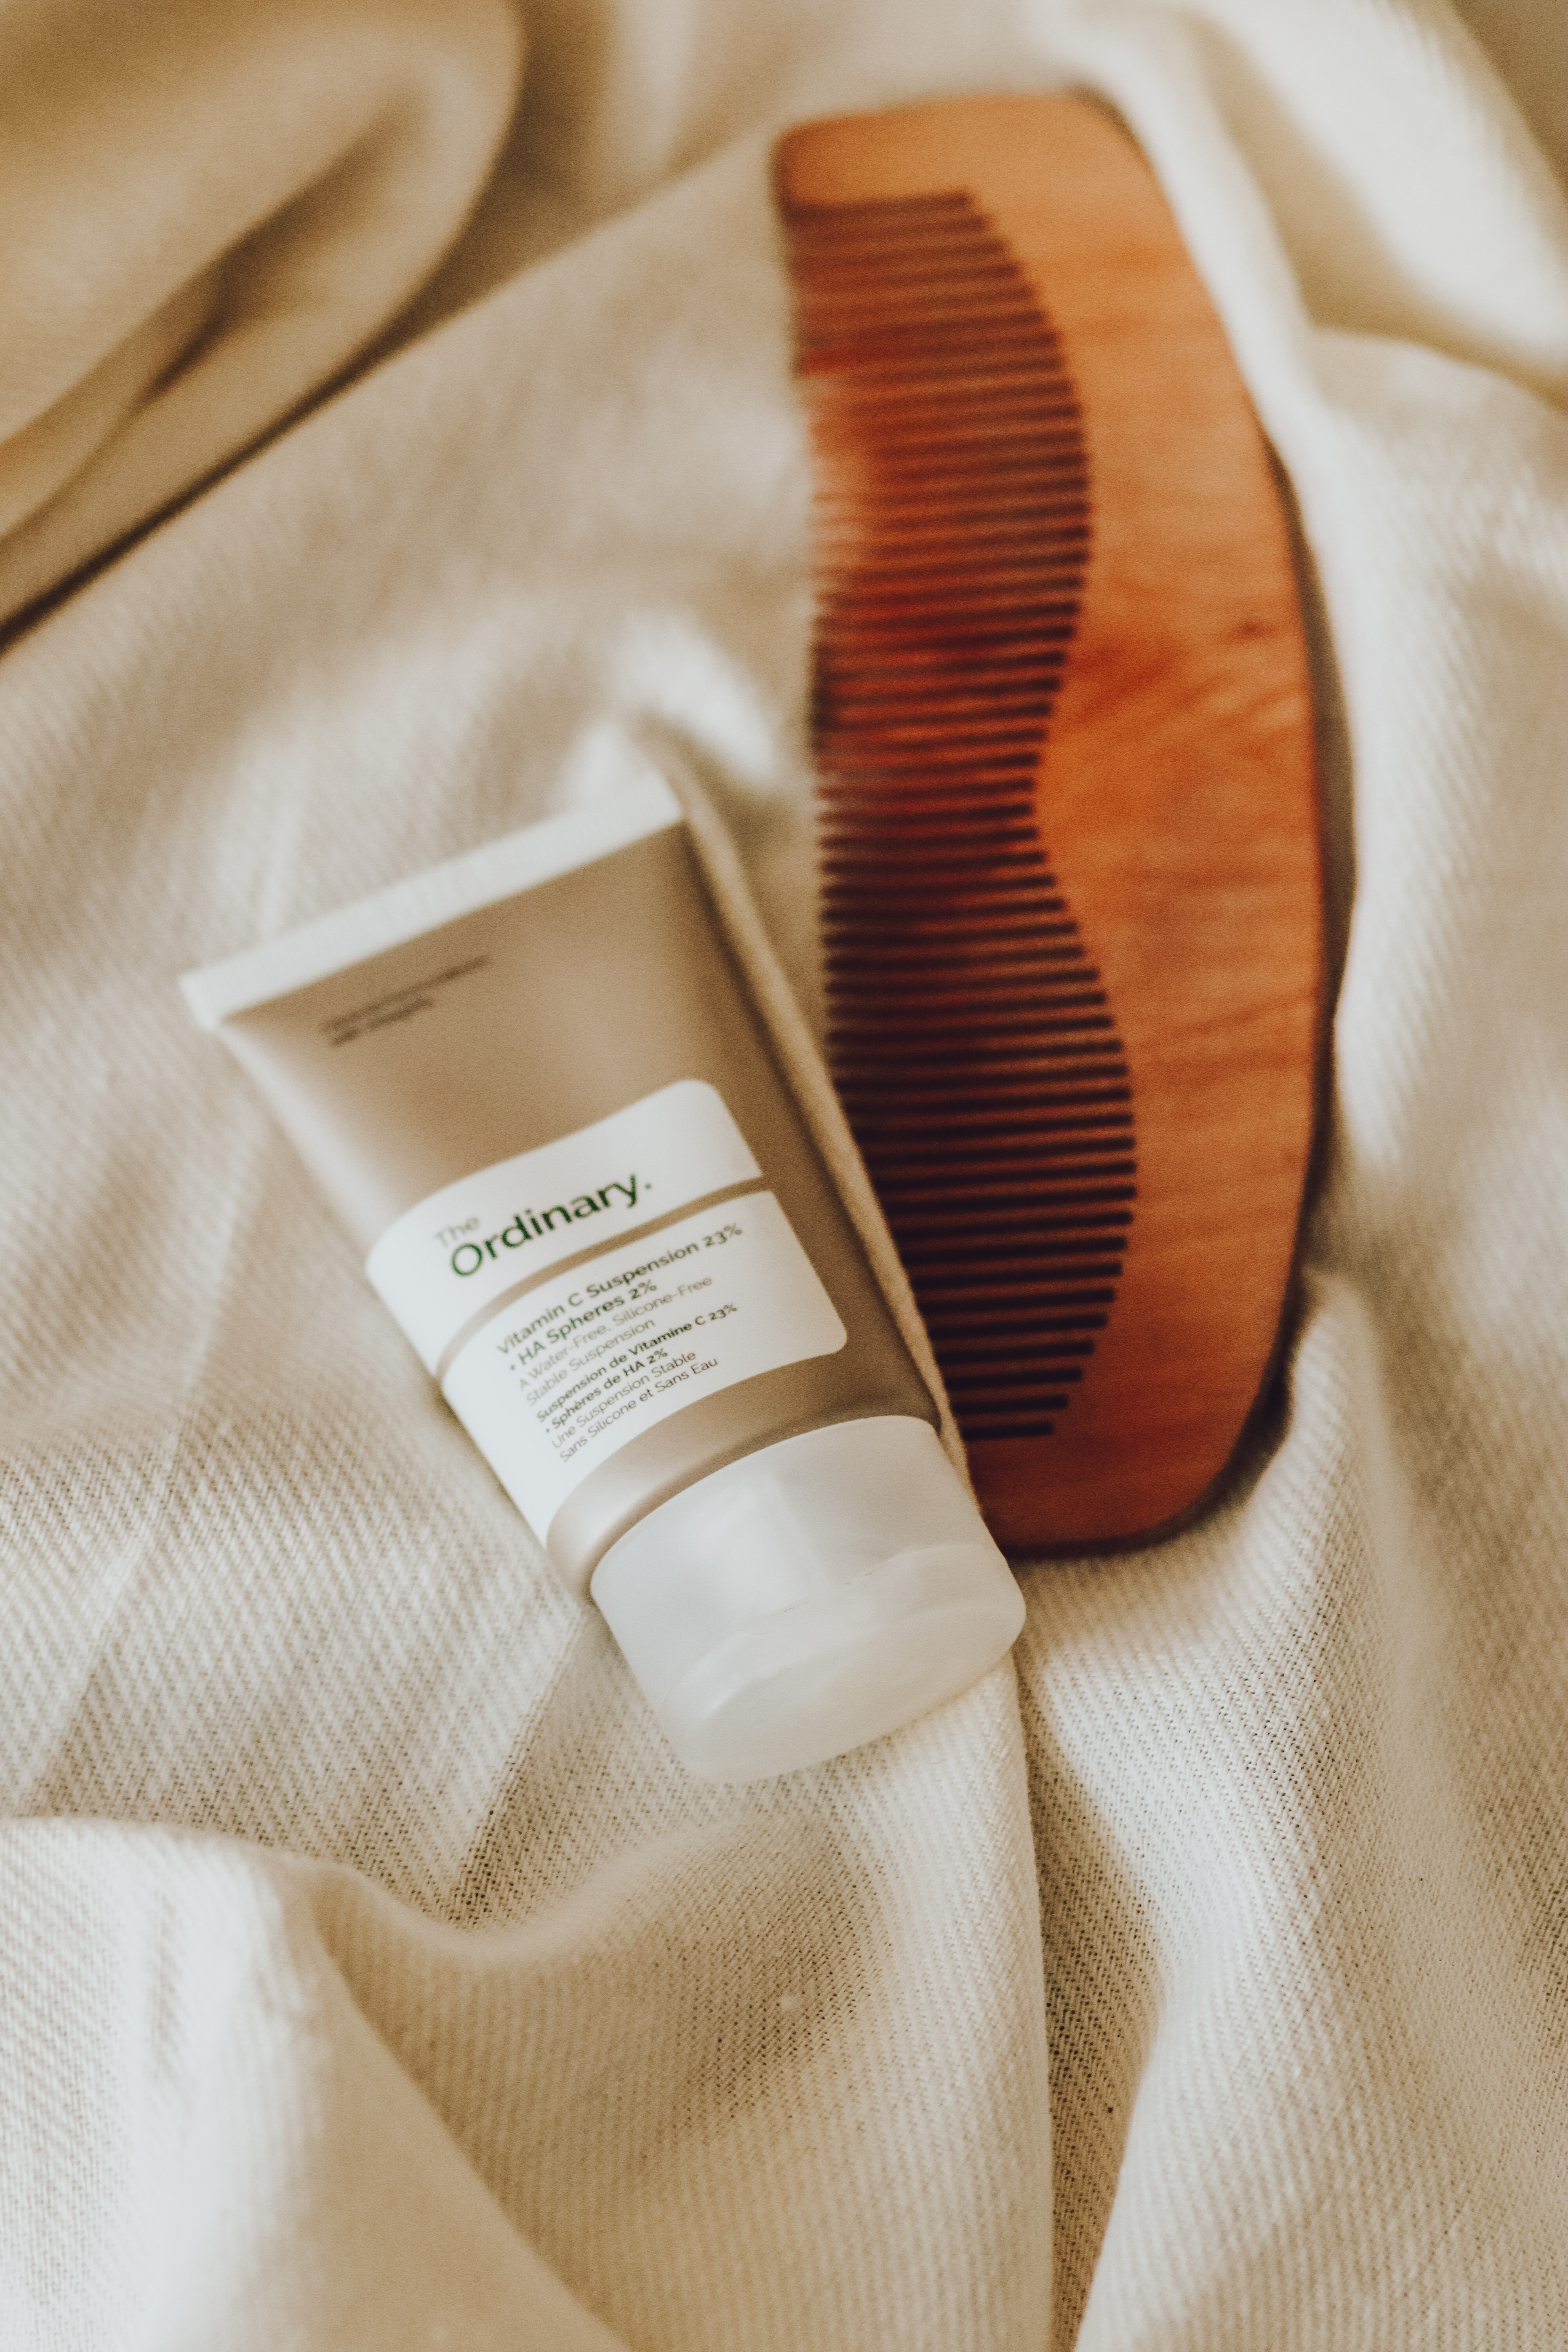 A tube of The Ordinary's Vitamin C Suspension is placed on a bed at a slight angle. Next to it is a brown comb.